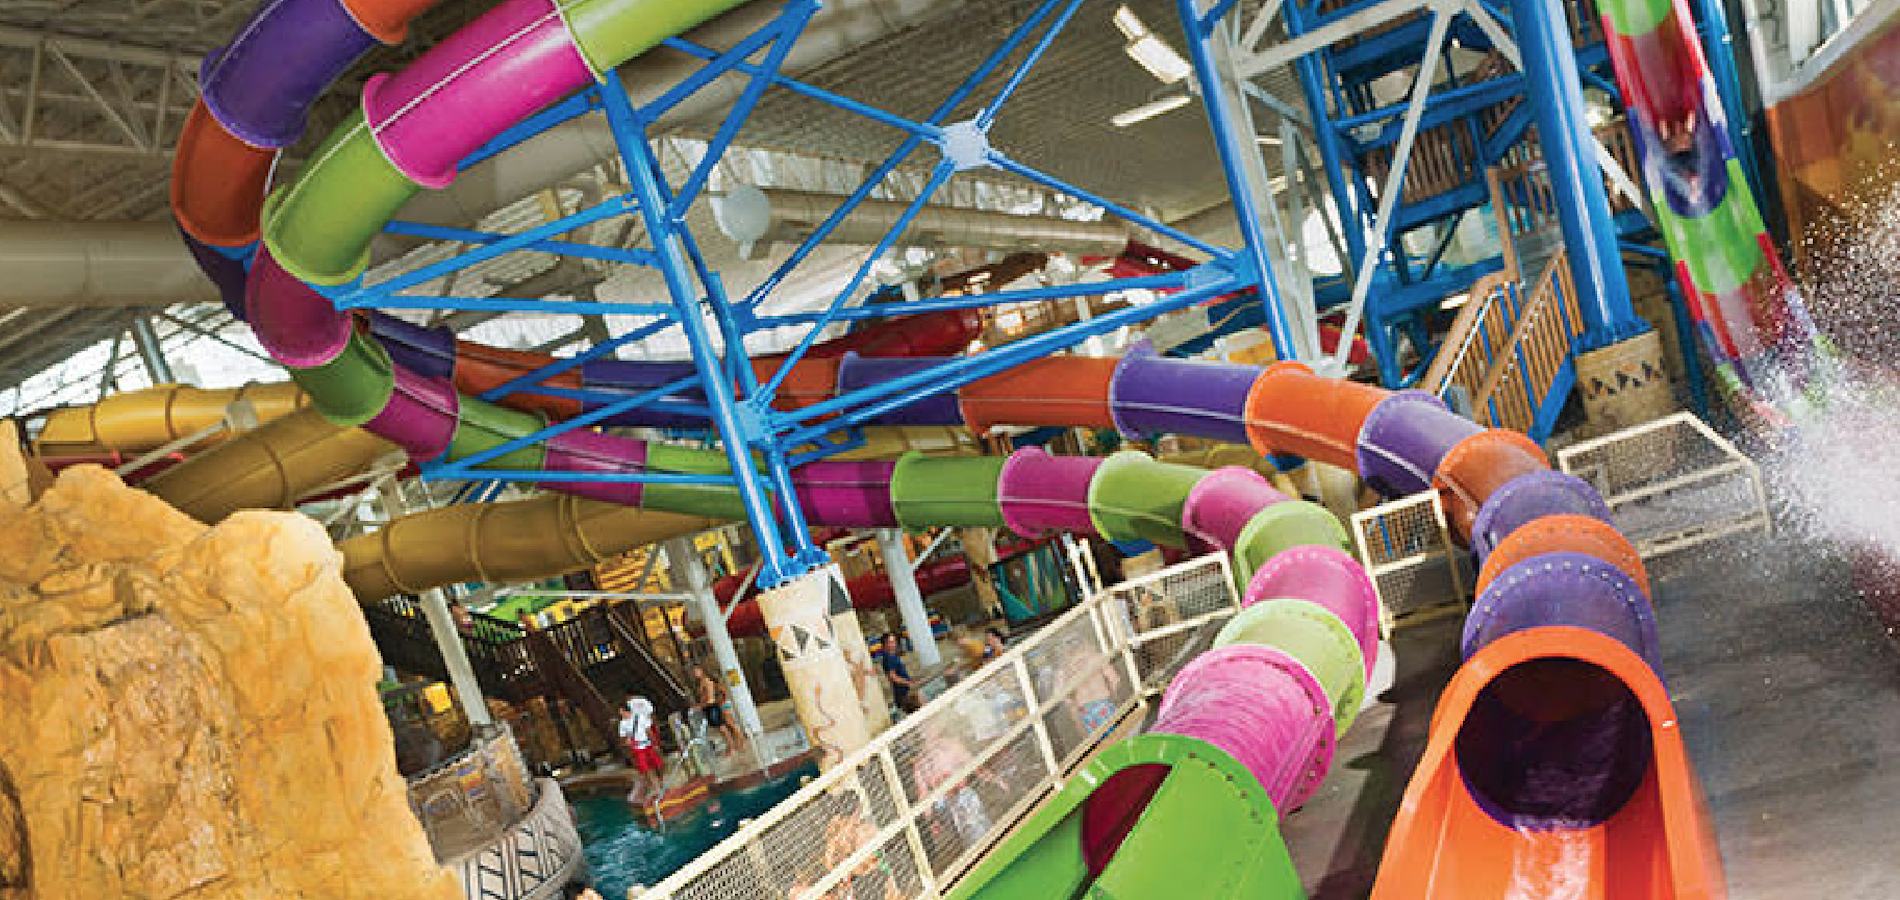 The Week The Biggest Indoor Waterpark In The US Goes Kosher!